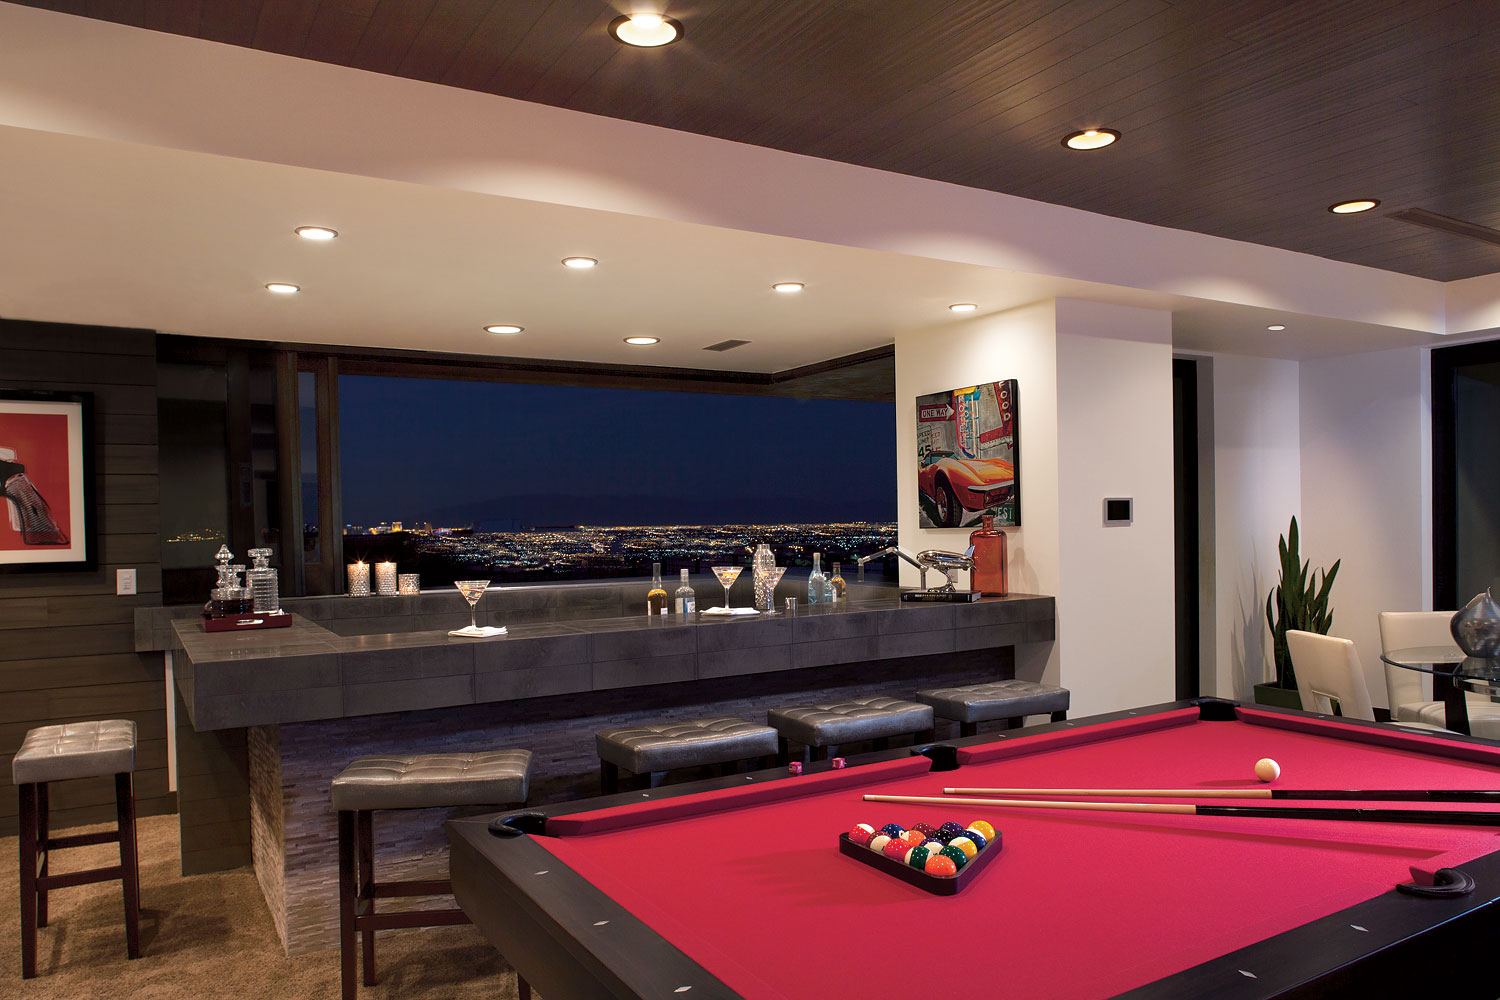 The ultimate vegas party house - The besthousing designs of america in ...